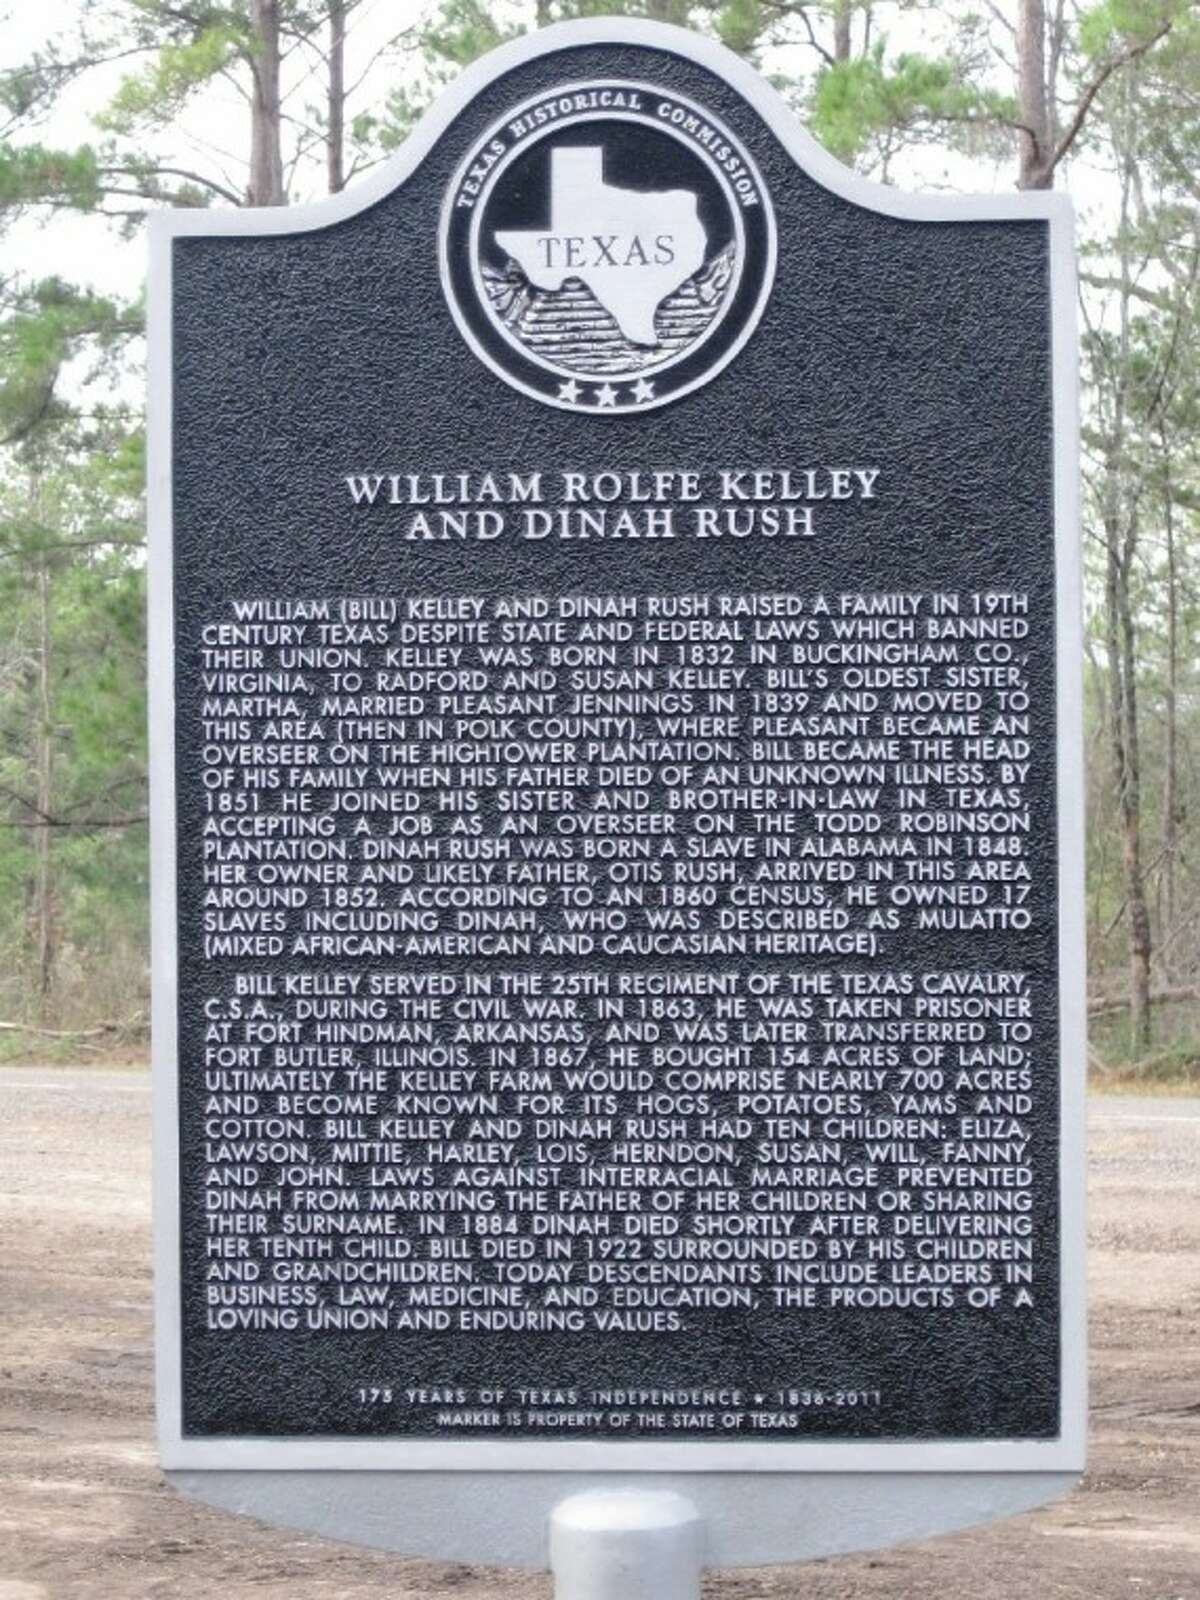 This historical cemetery marker commemorating the lives of William